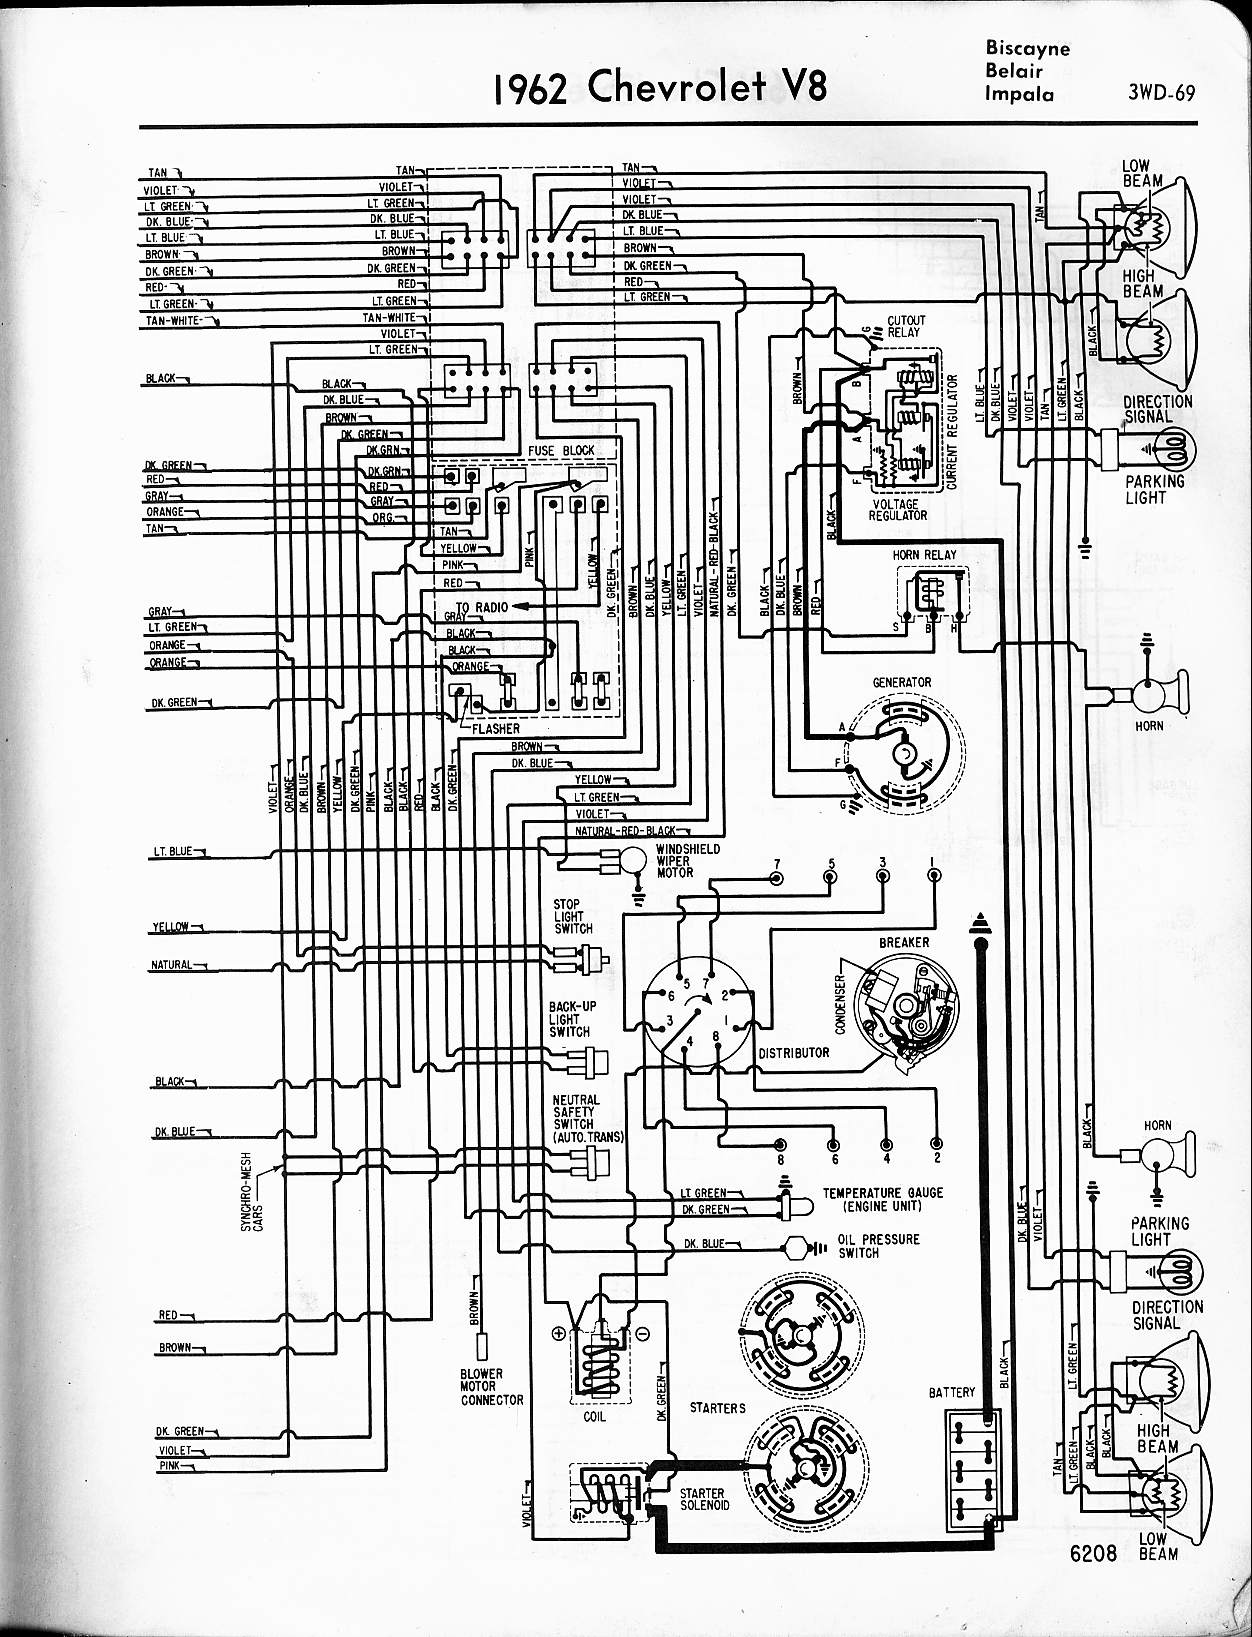 MWireChev62_3WD 069 1962 chevrolet wiring diagram manual chevytalk free 1963 impala electrical diagram at soozxer.org